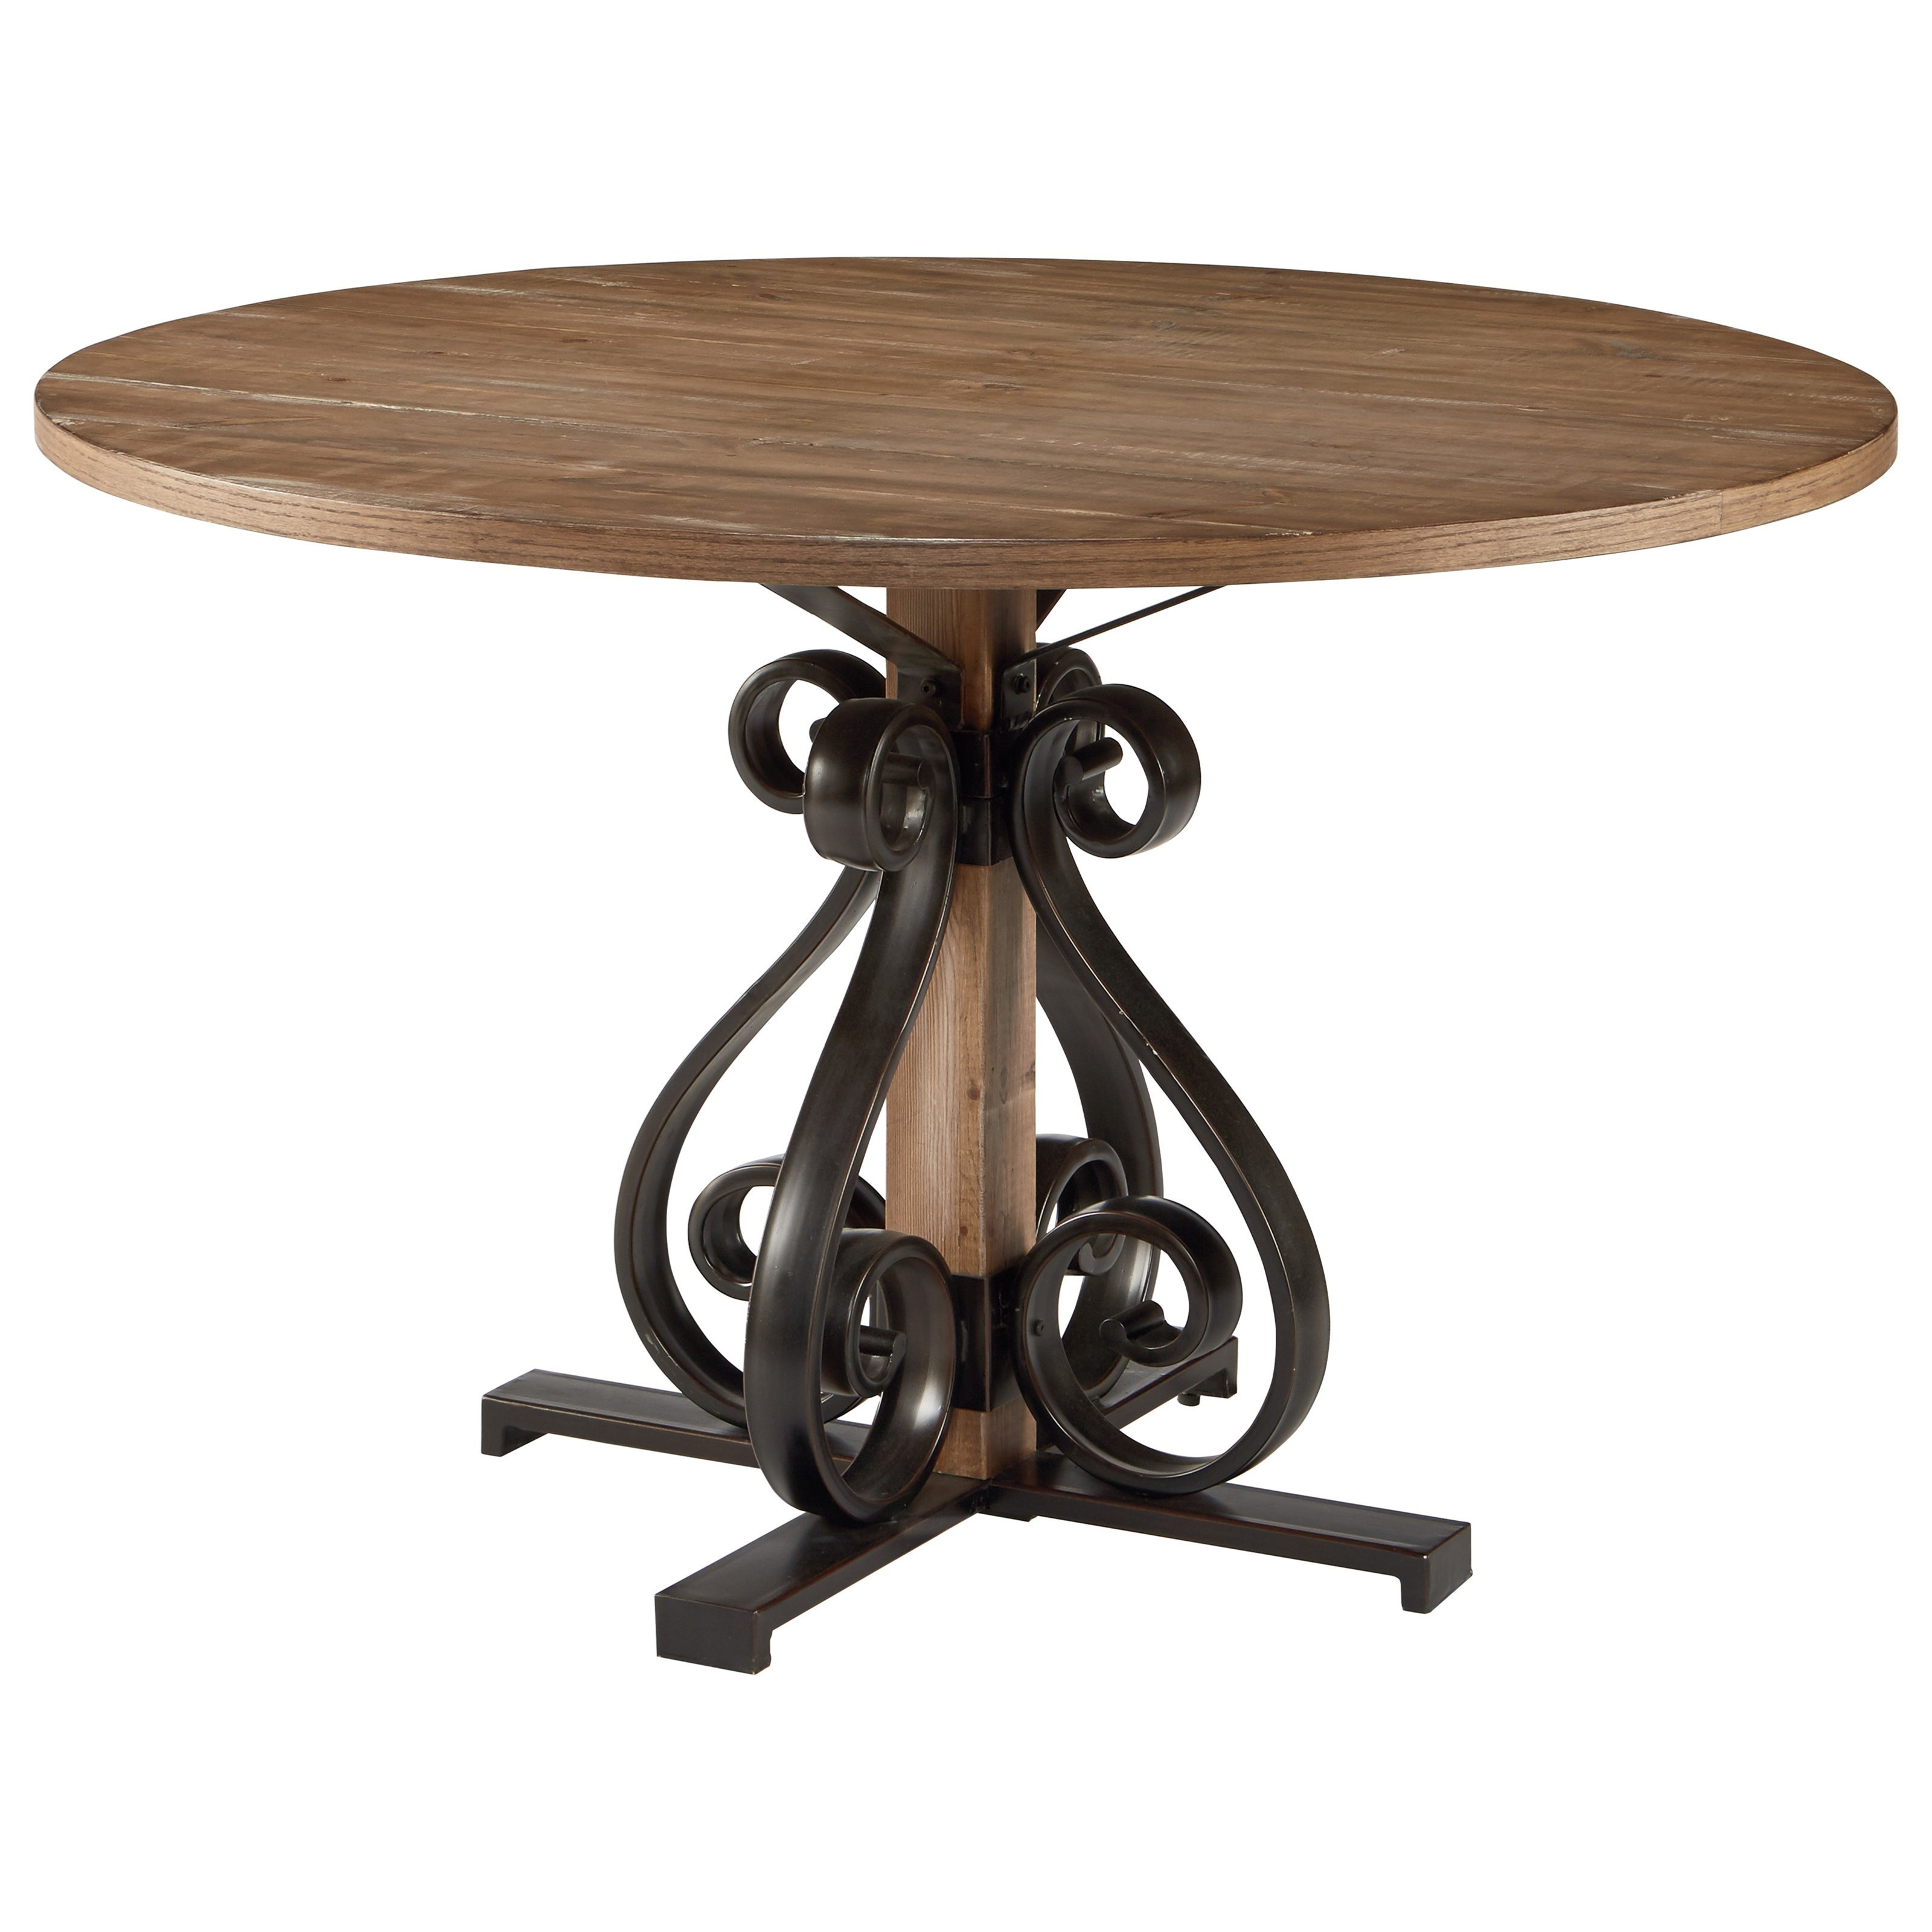 Magnolia Home Ellipse Cocktail Tables By Joanna Gaines In Best And Newest Magnolia Homejoanna Gaines French Insipired 3010601s Round (View 10 of 20)